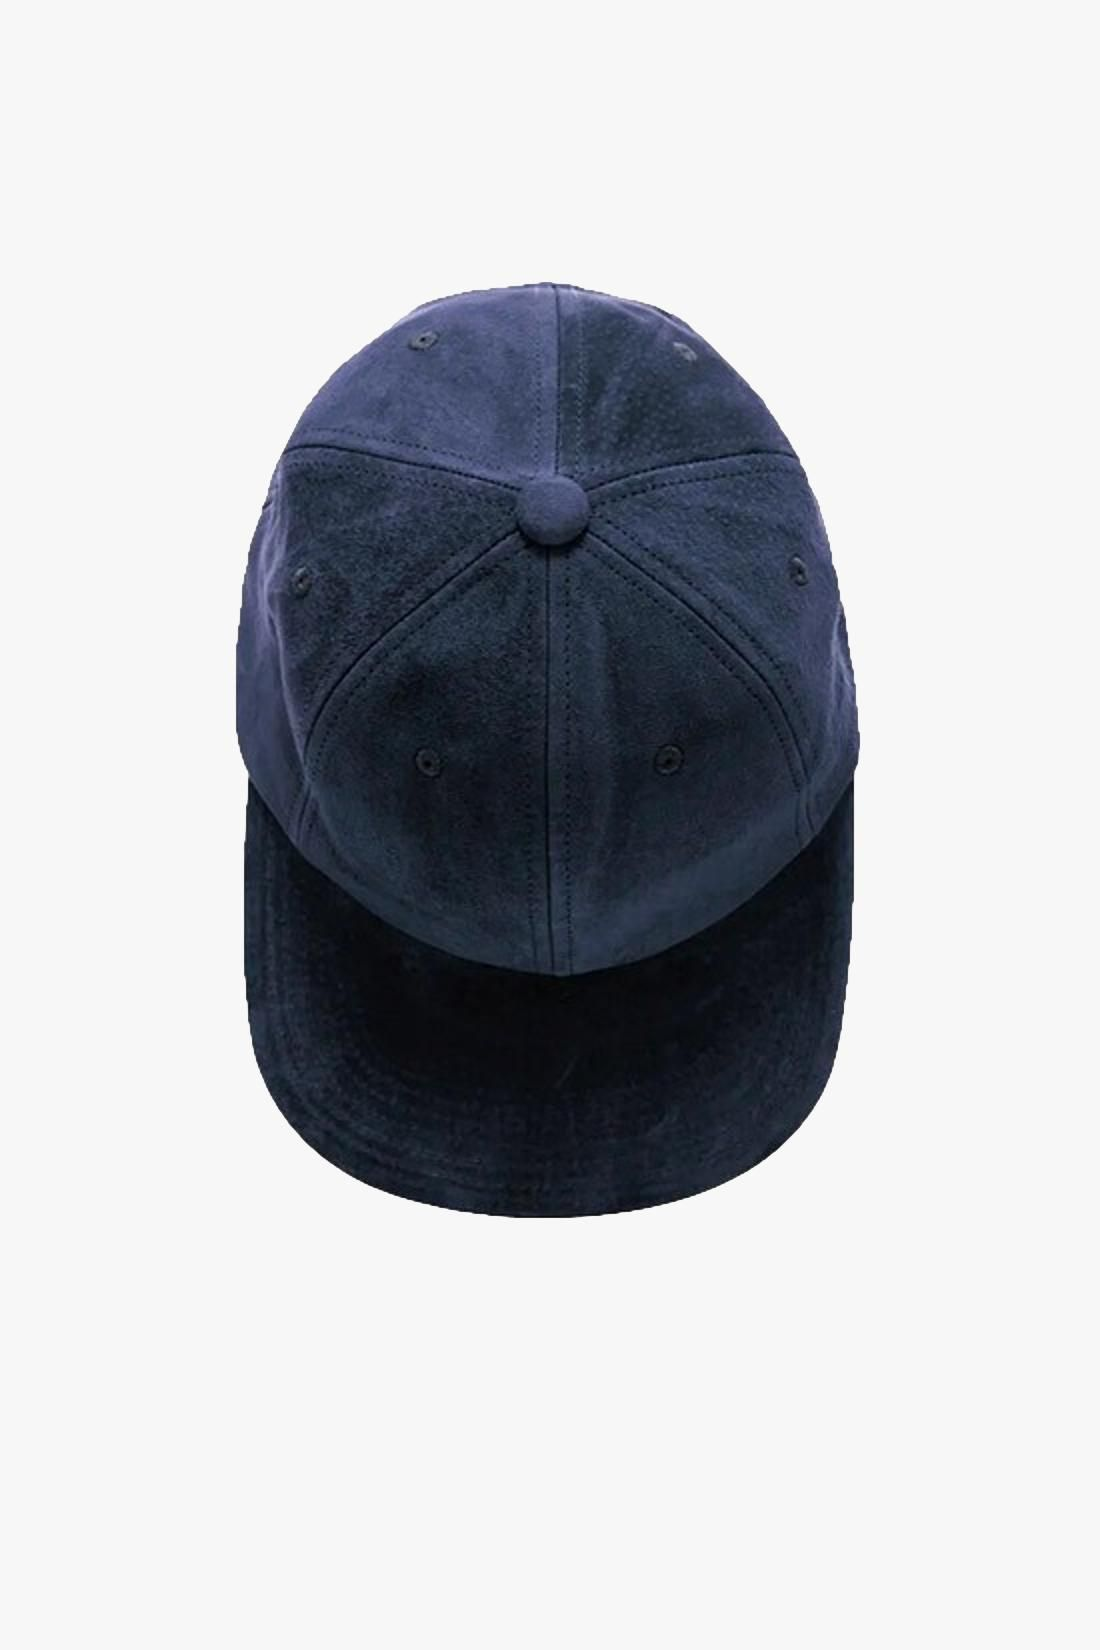 BEAMS PLUS / 6 panel cap suede Navy